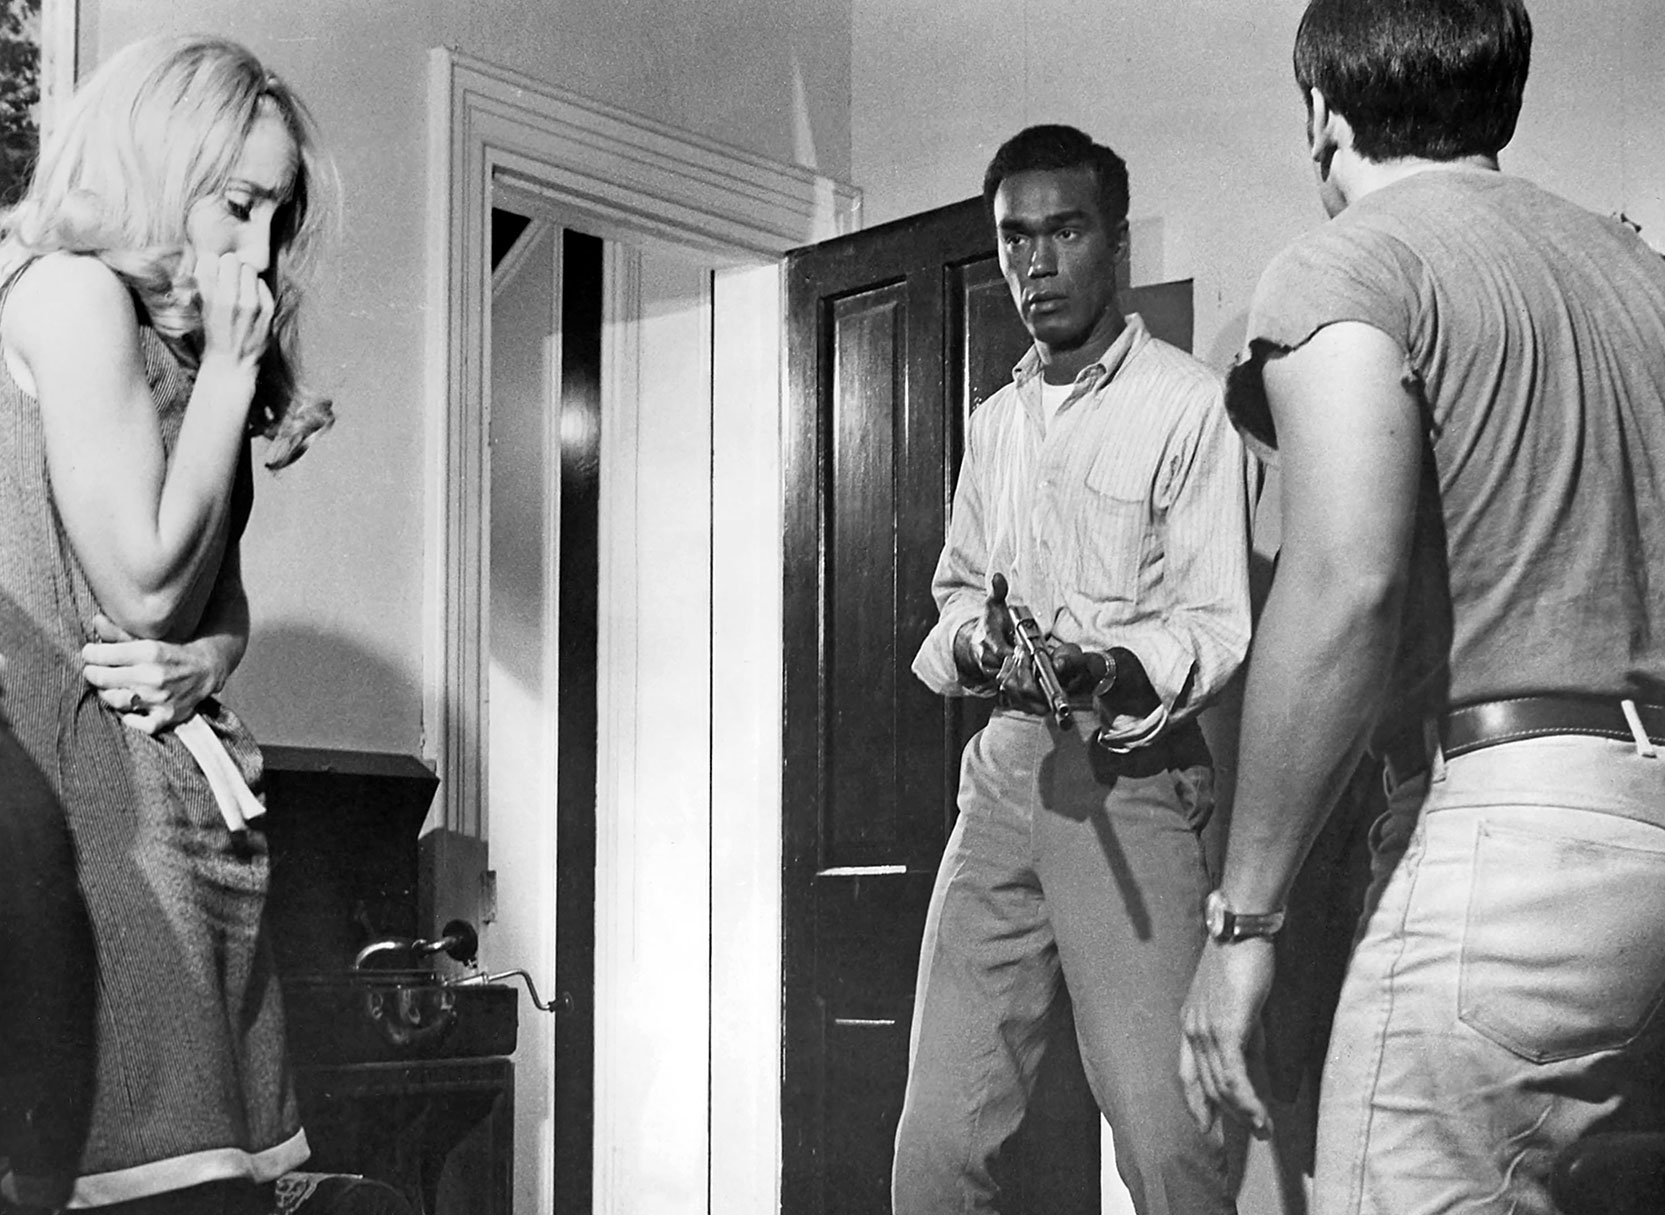 A discussion takes place about the safest location in the farmhouse in a scene from George Romero's Night of the Living Dead (1968).  Photo © Image Ten, Inc. All Rights Reserved